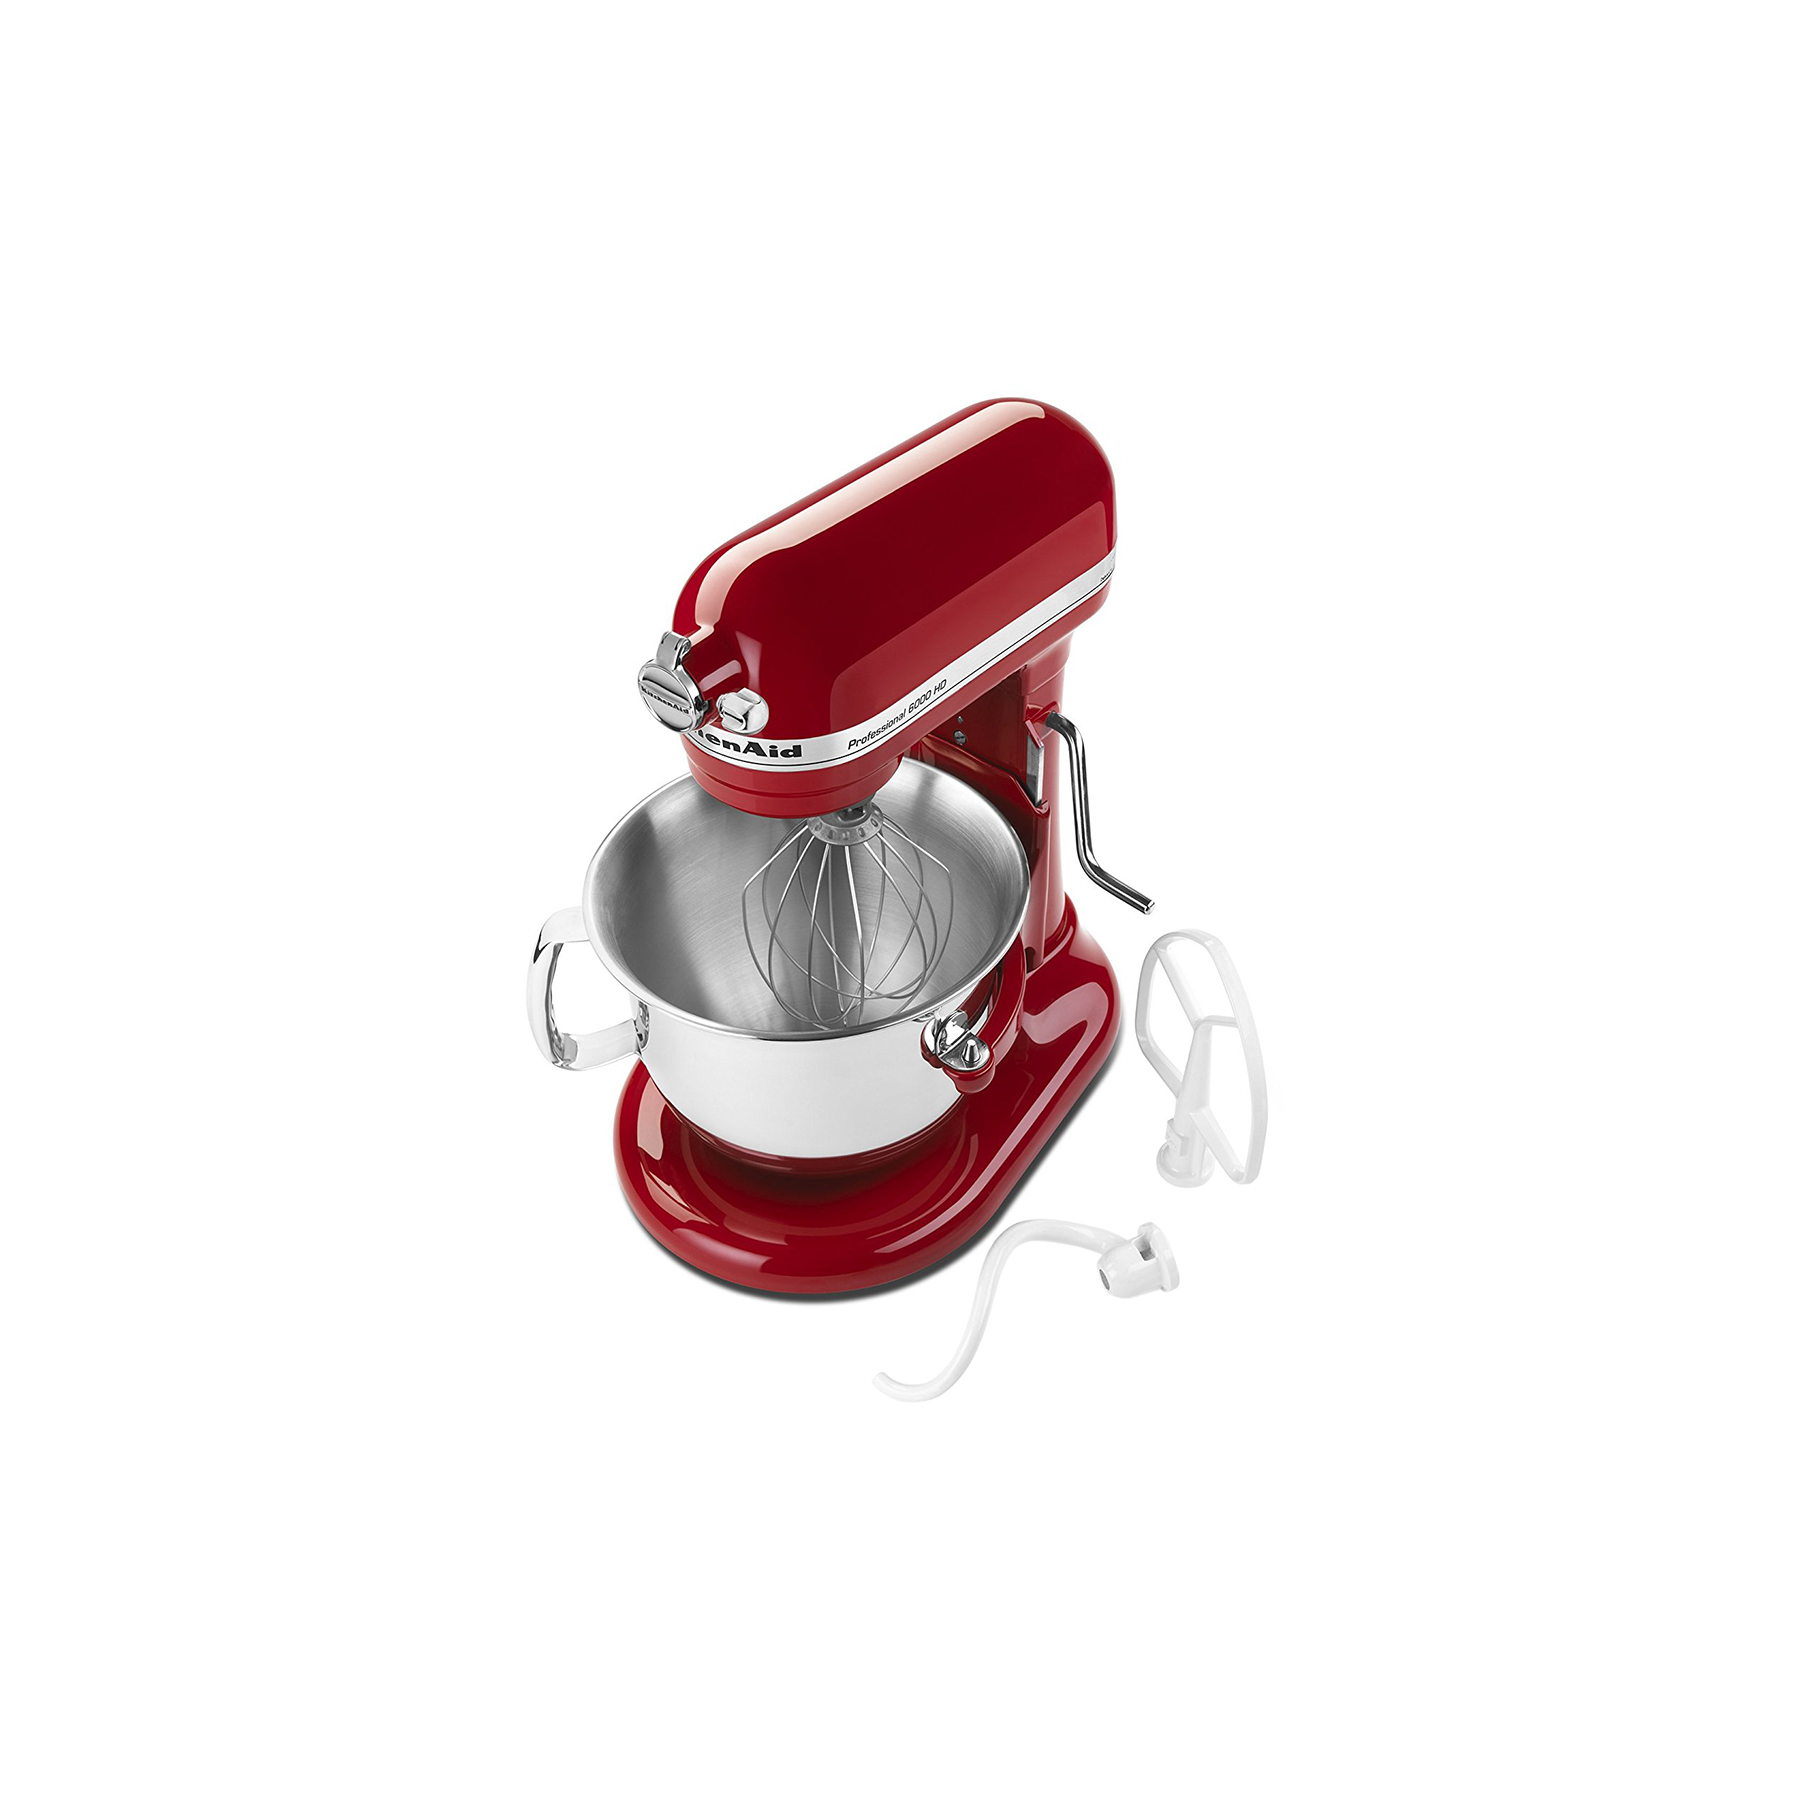 kitchenaid-professional-stand-mixer-6-quart